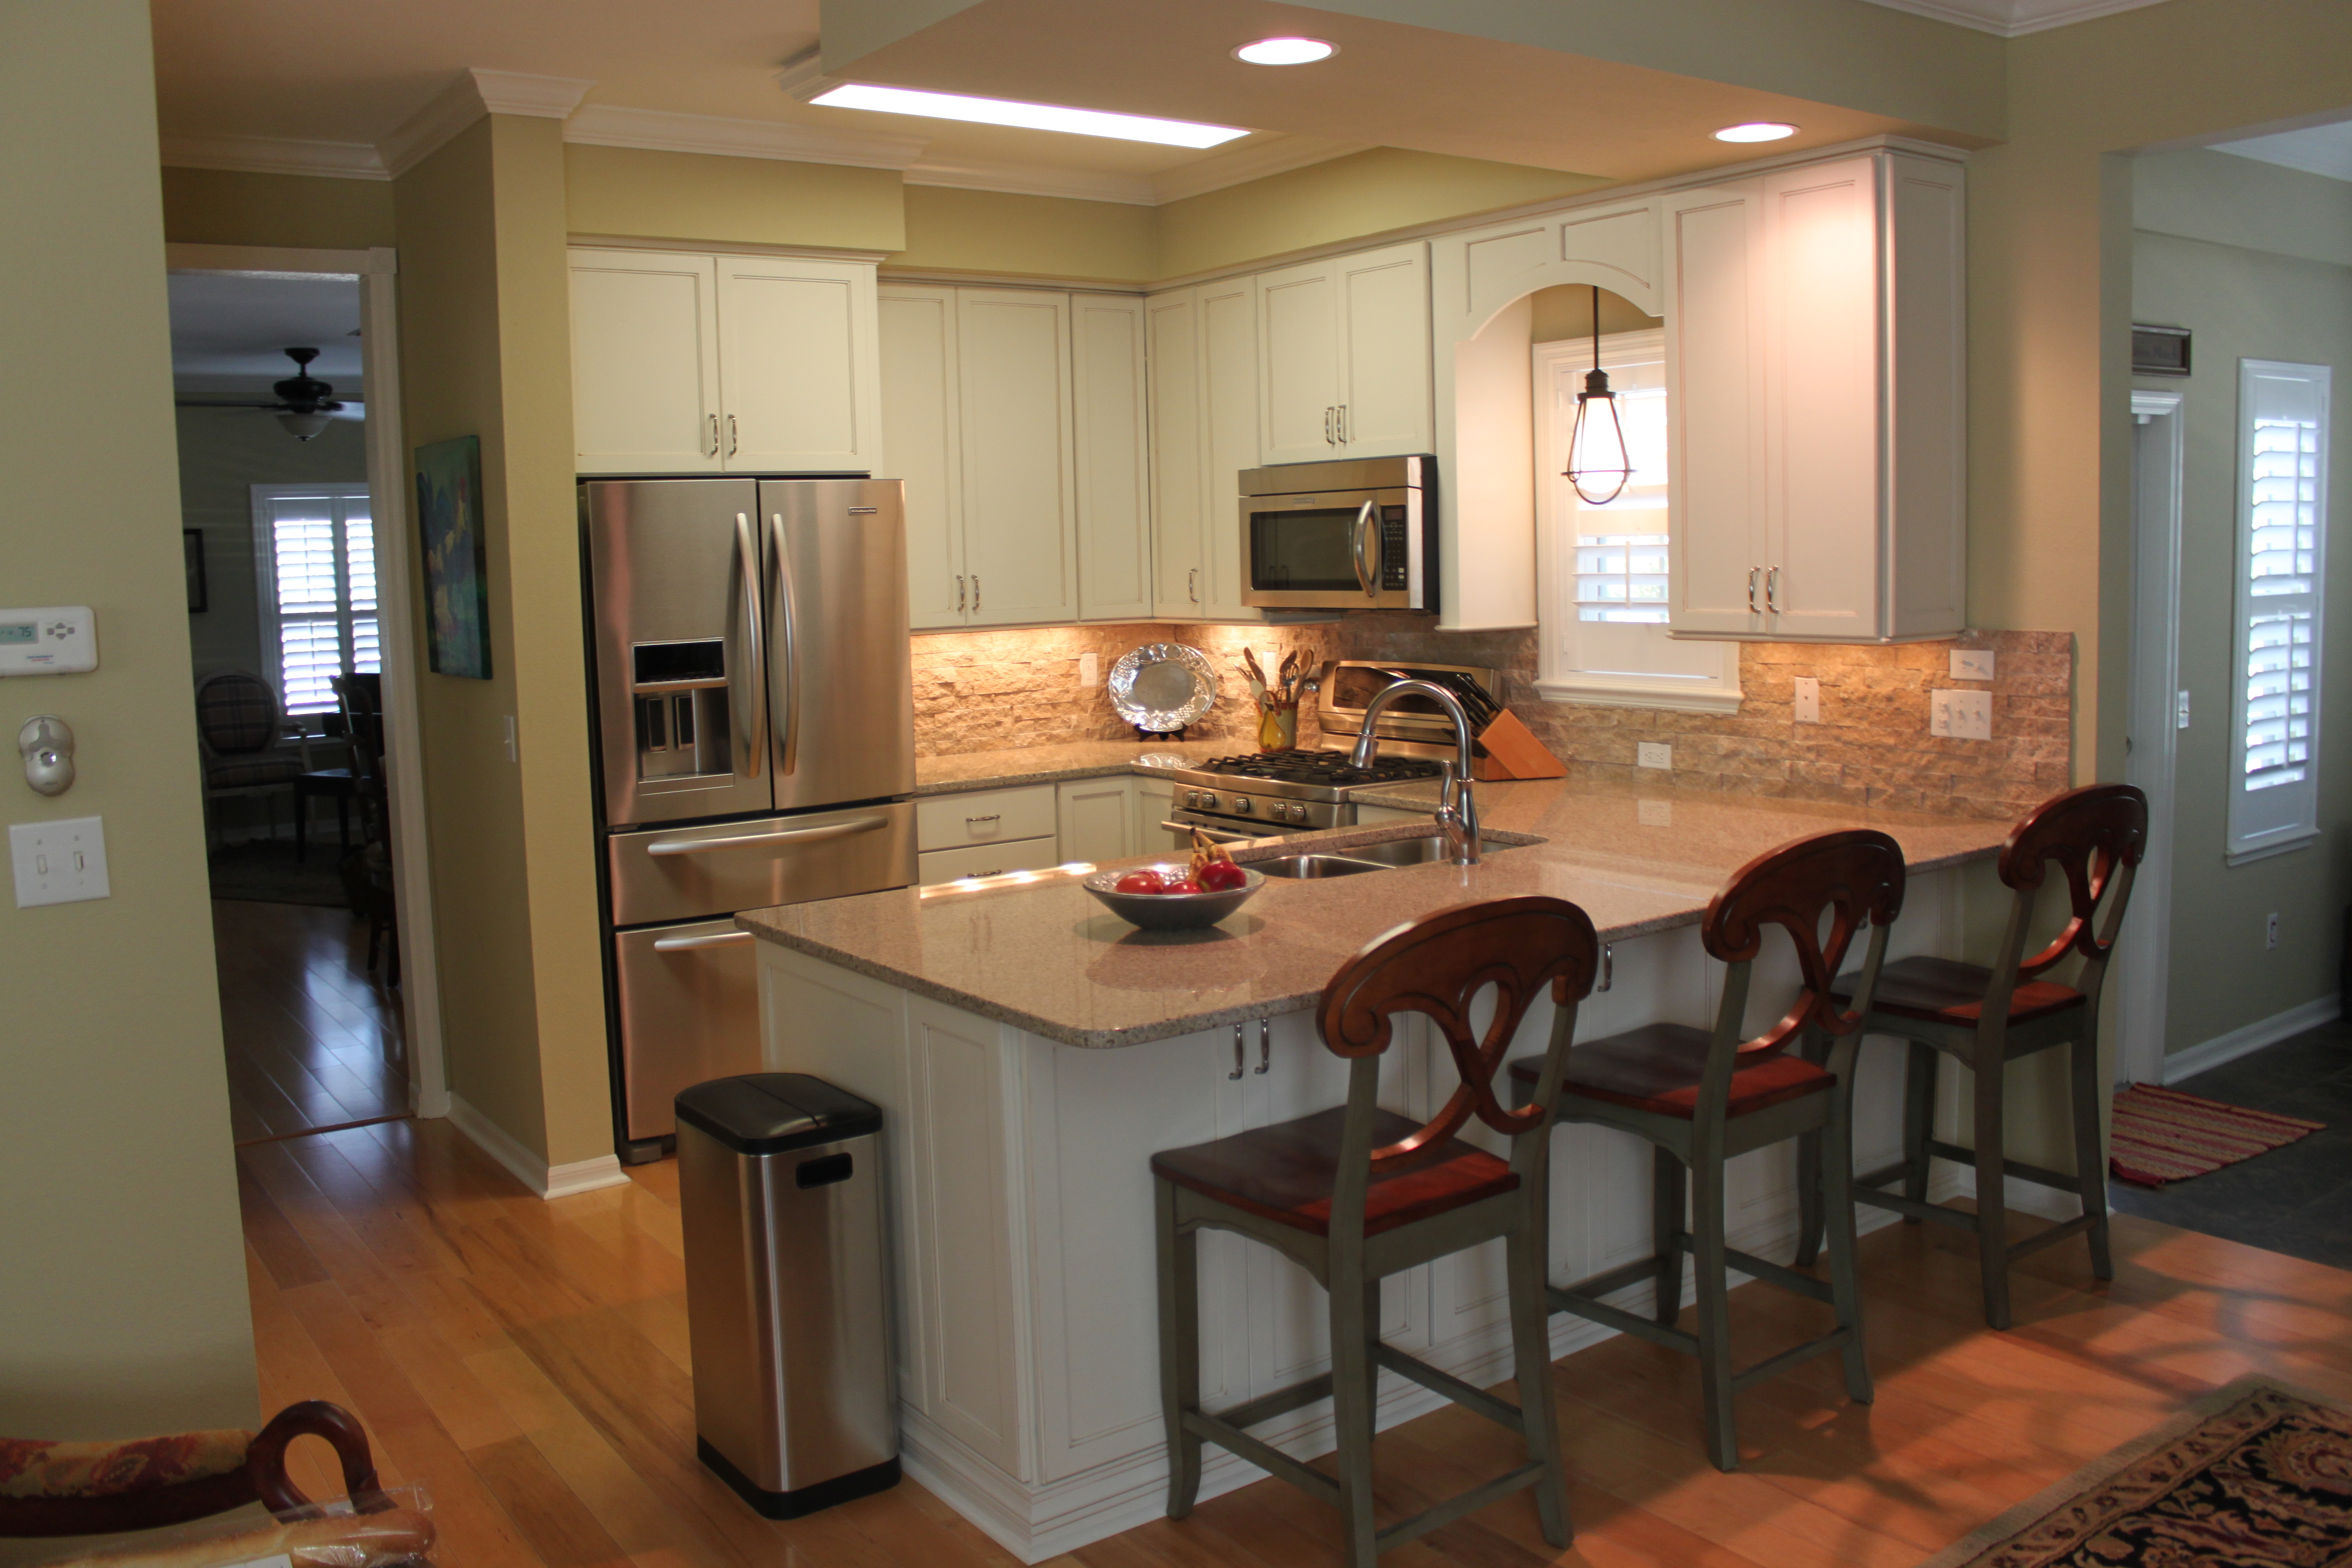 Kitchen Remodeling What To Consider Establishing A Budget - Kitchen remodeling gainesville fl